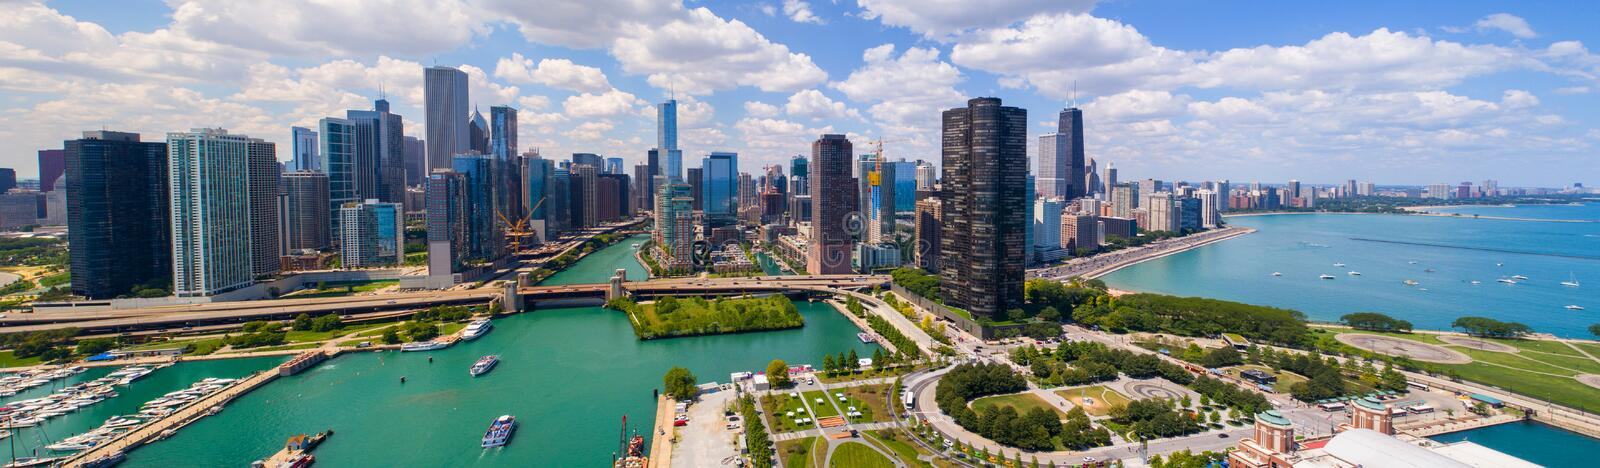 Aerial panorama Downtown Dhicago summer 2017 stock photography